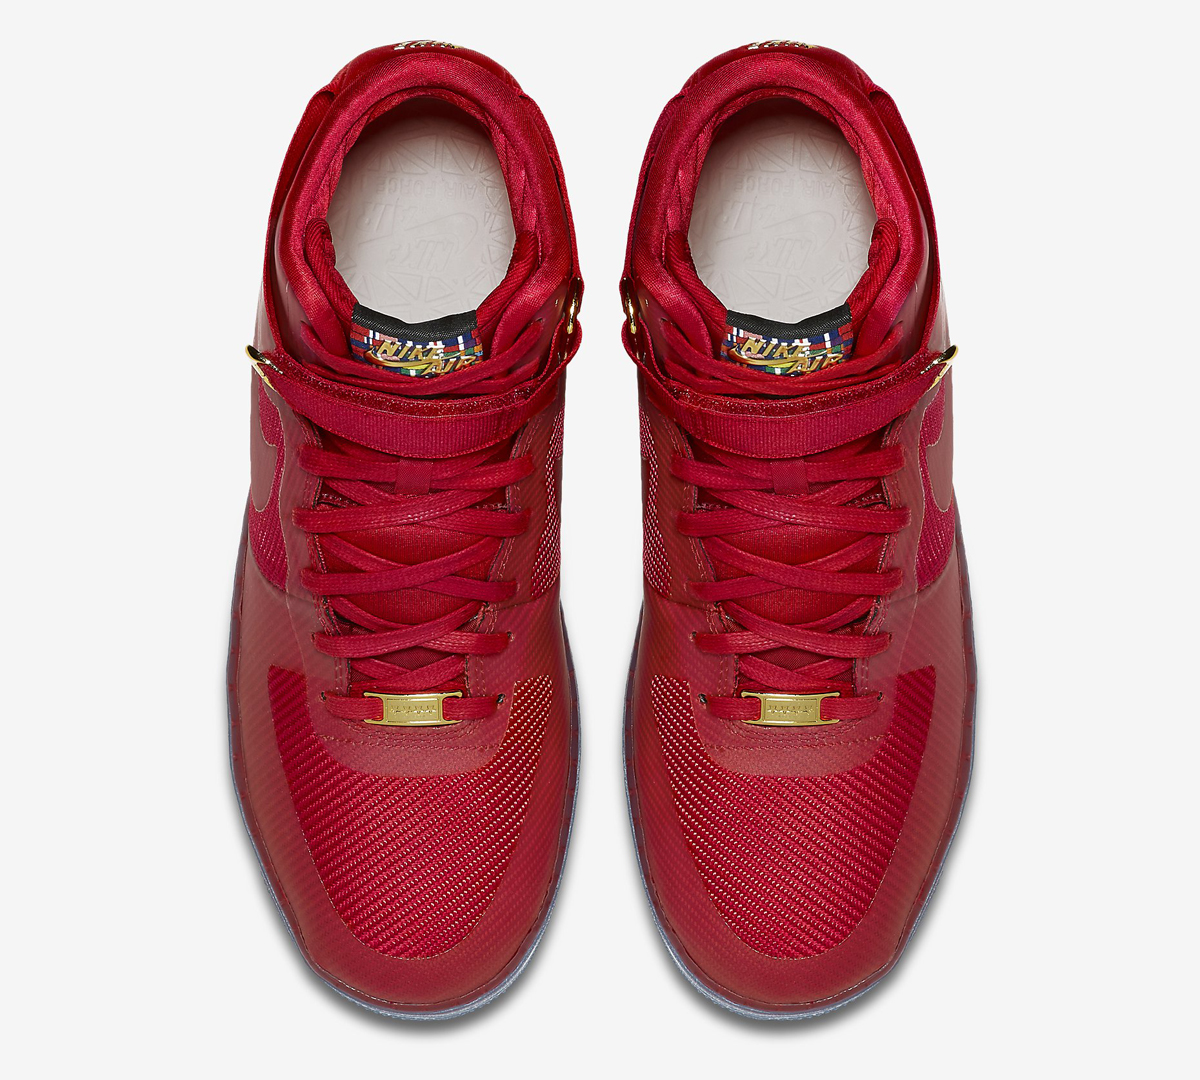 Nike's Latest All Red Sneaker Just Released | Sole Collector